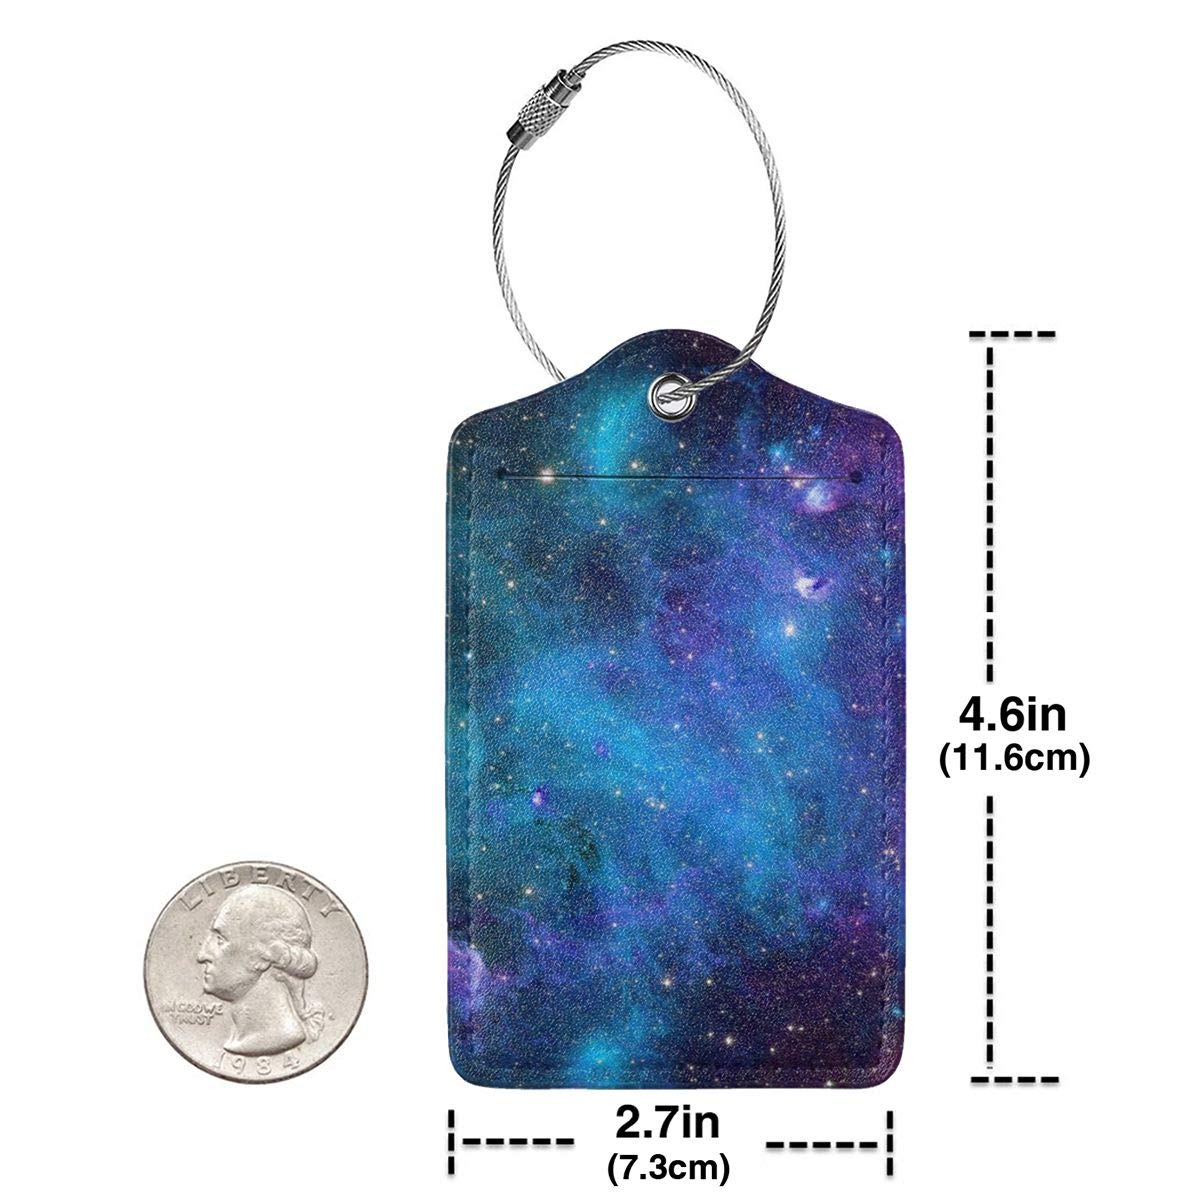 Stars-Space Leather Luggage Tags Personalized Address Card With Privacy Flap